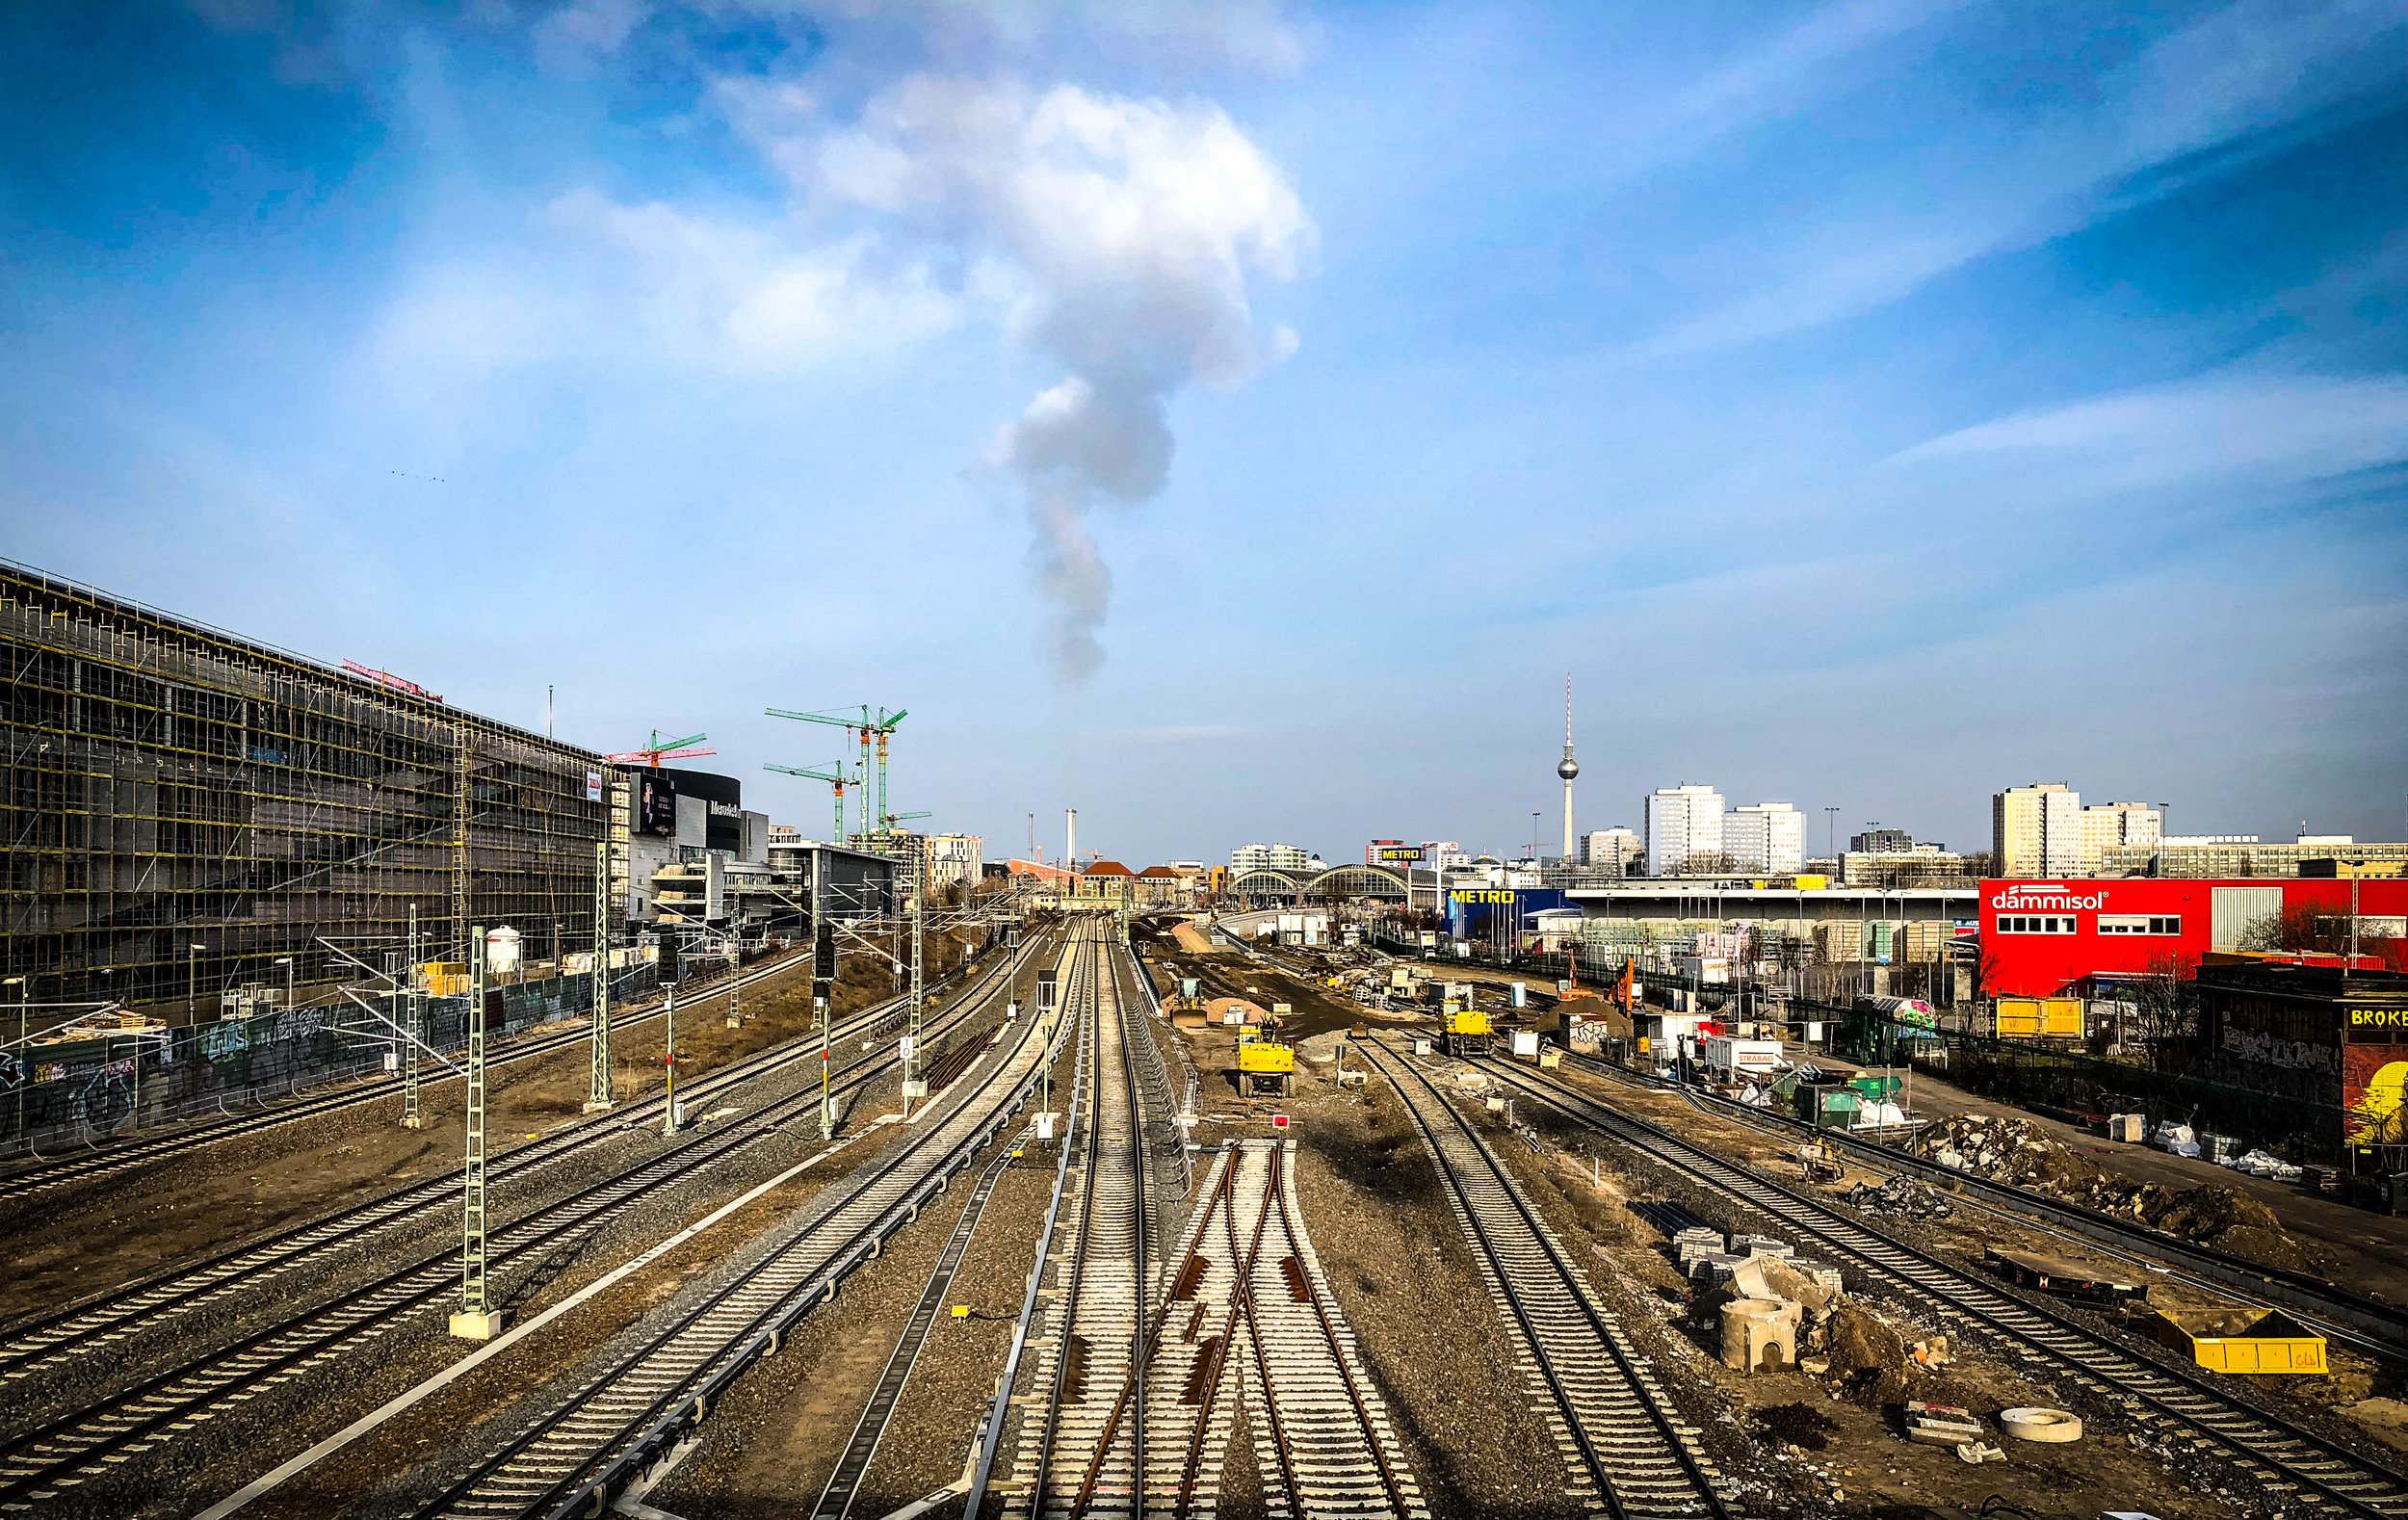 Steam plume over railway tracks at Friedrichshain